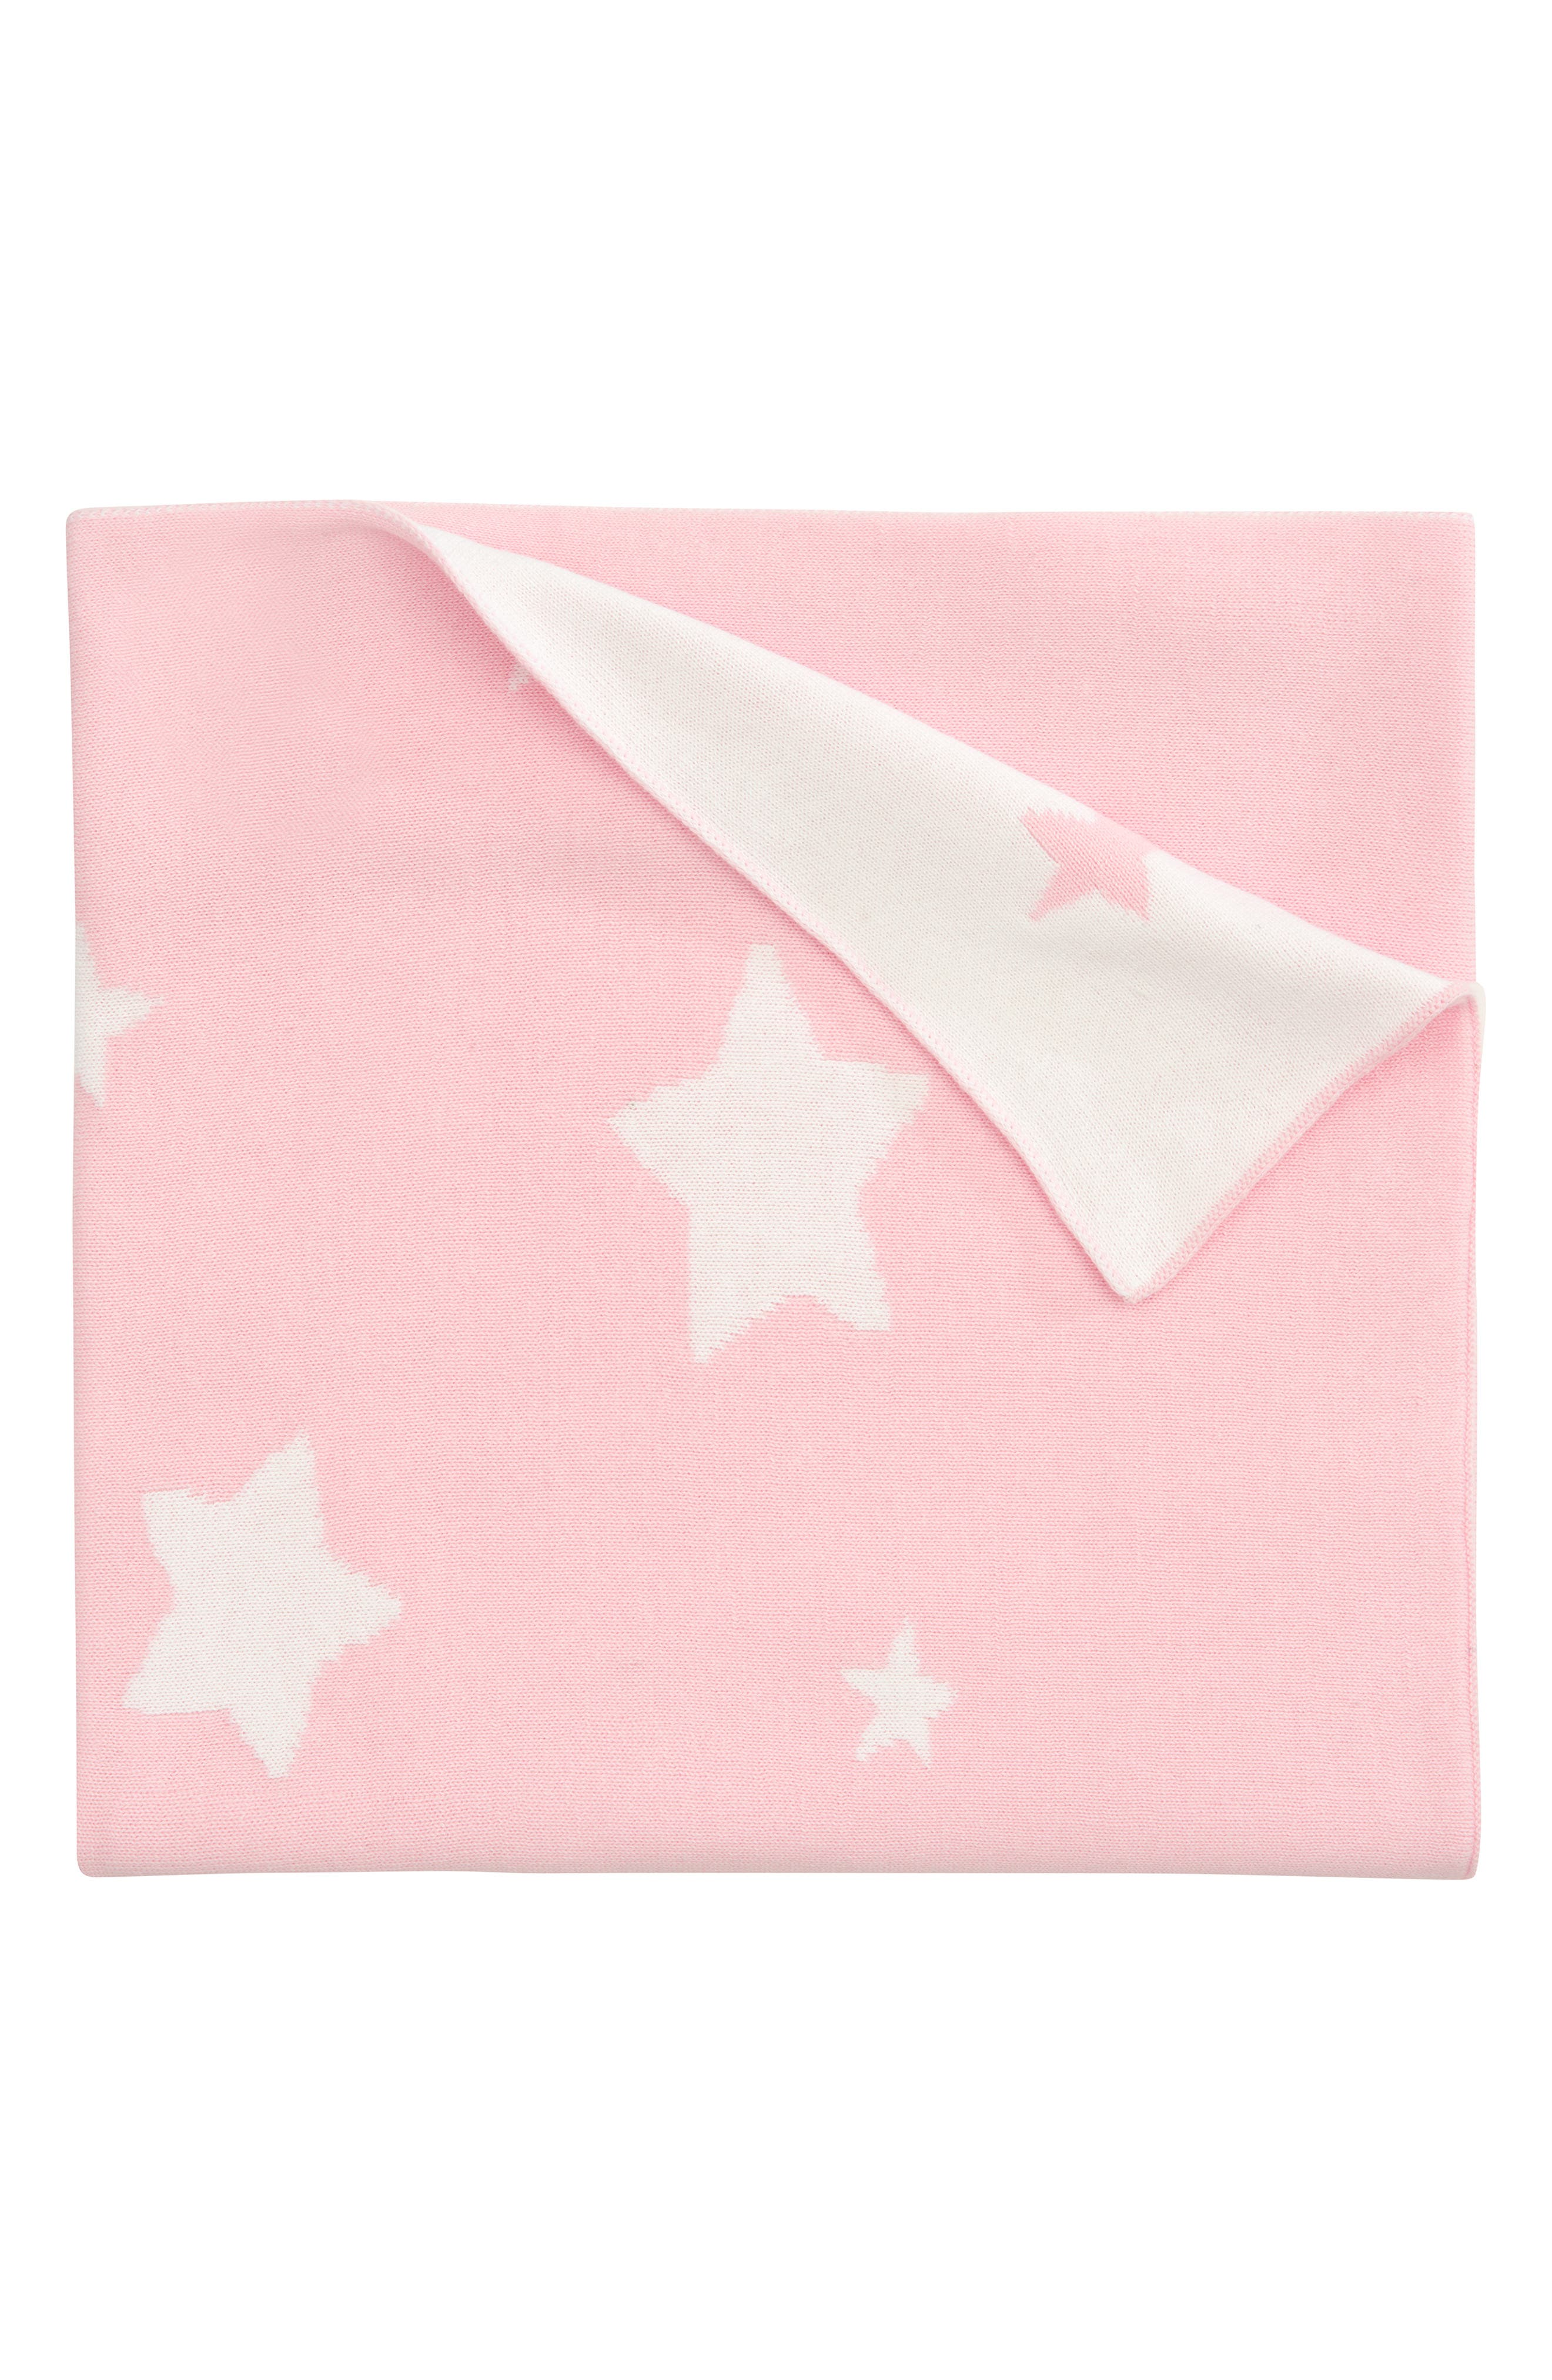 'Star' Knit Blanket,                             Alternate thumbnail 2, color,                             LIGHT PINK